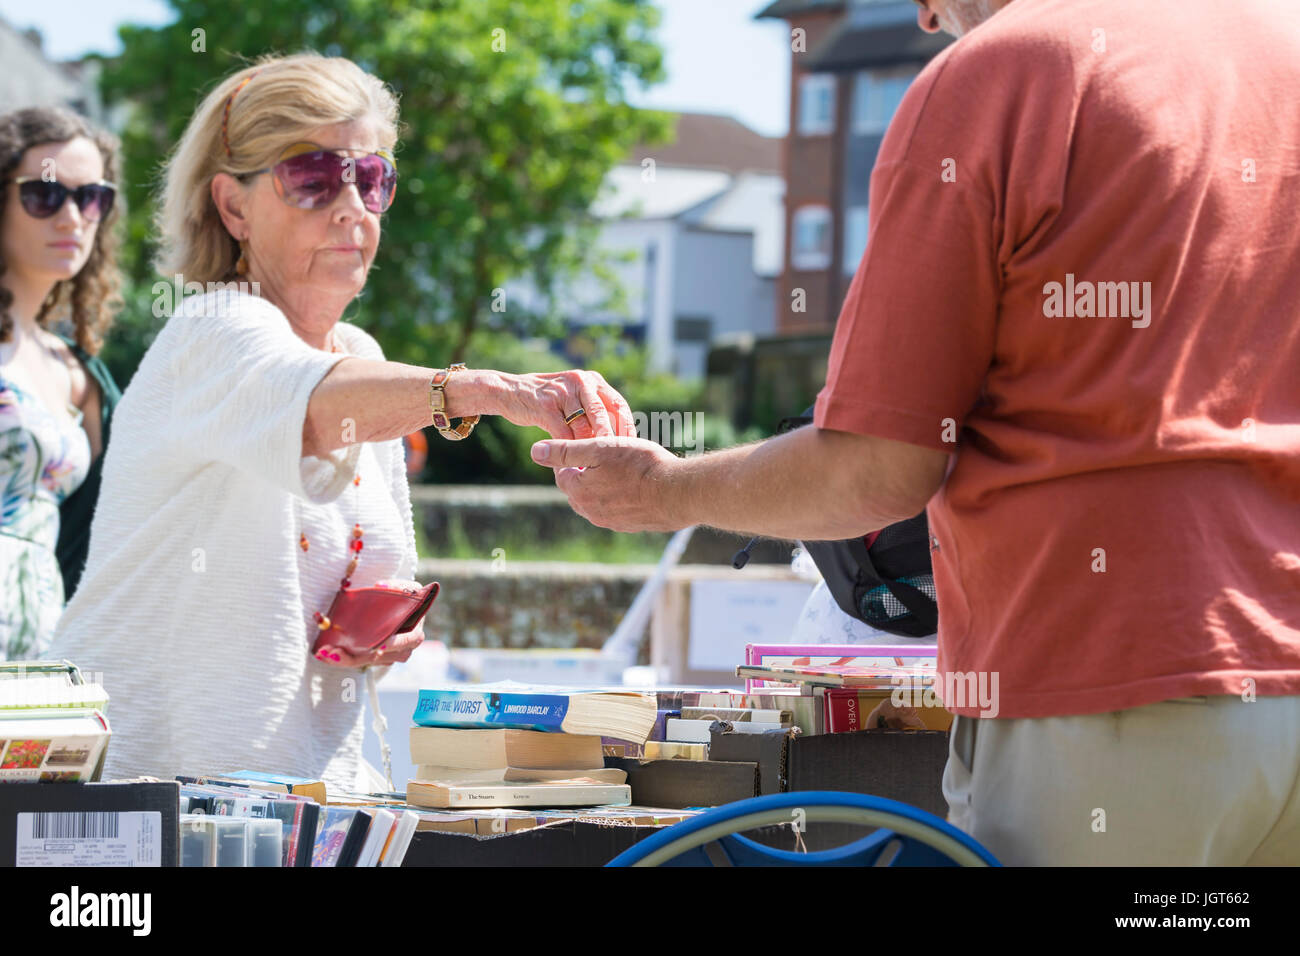 Woman paying for goods at an outdoor market stall with cash, - Stock Image